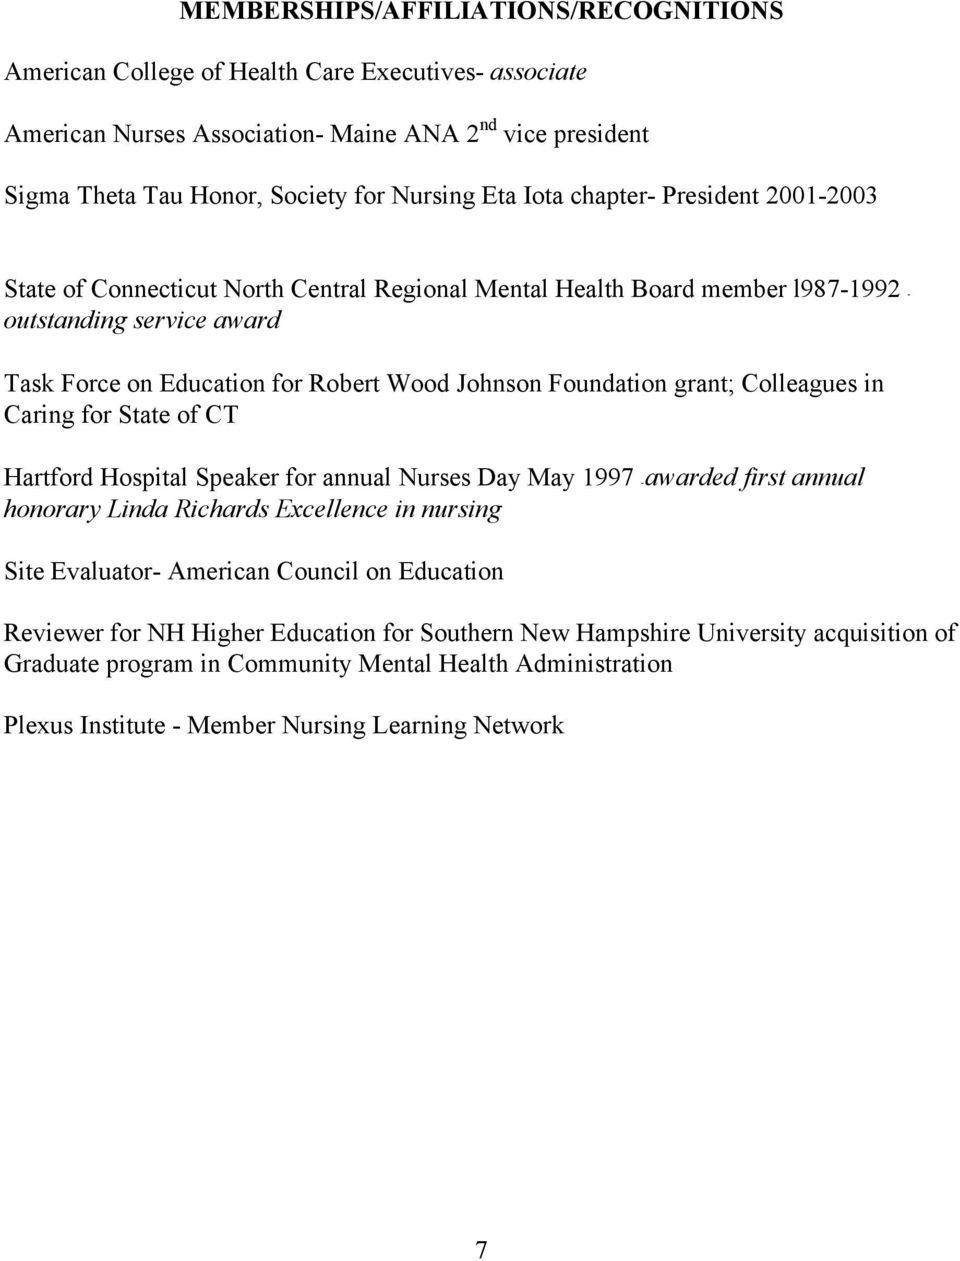 Foundation grant; Colleagues in Caring for State of CT Hartford Hospital Speaker for annual Nurses Day May 1997 - awarded first annual honorary Linda Richards Excellence in nursing Site Evaluator-